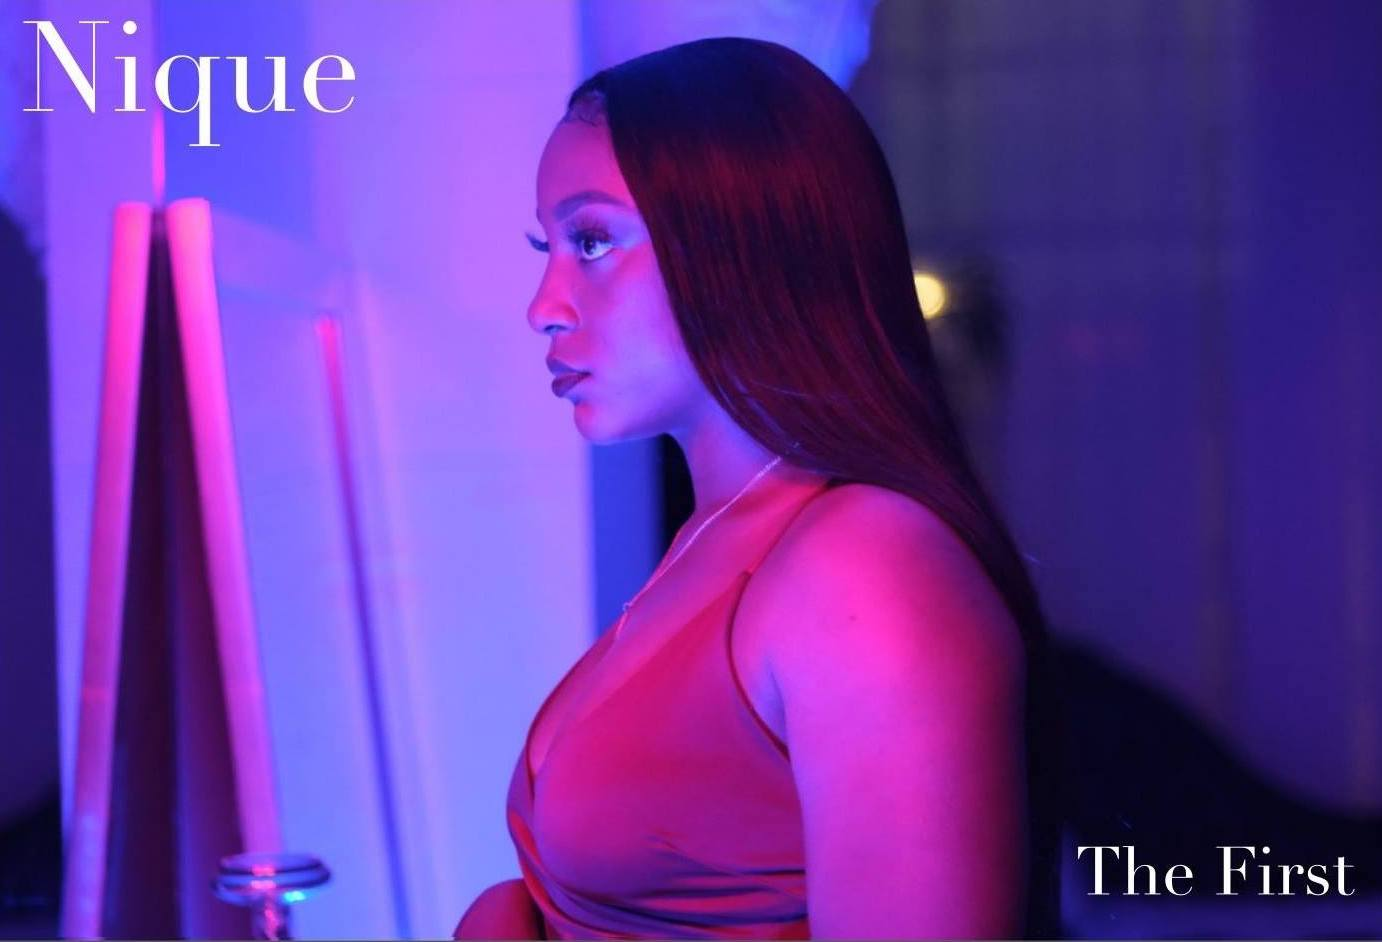 Nique Emerges As RnB Artist With Debut Song «The First»